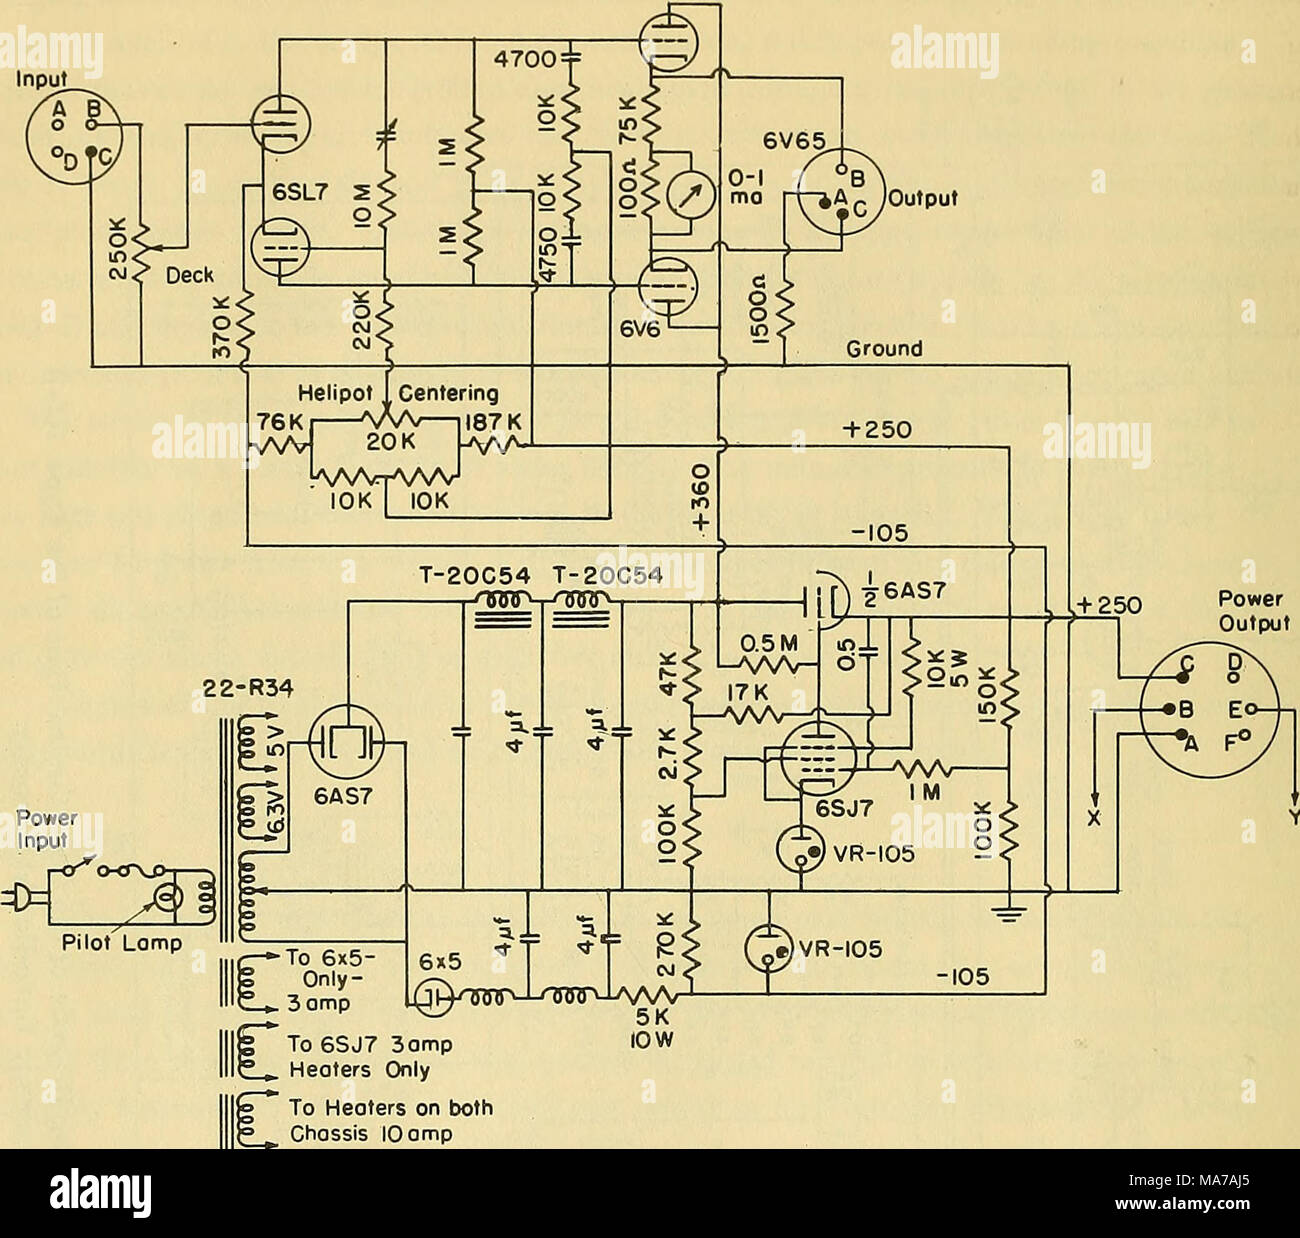 75 K 5 Wiring Diagram Great Installation Of Half Switched Schematic An Electronic Wave Height Measureing Apparatus To 6sj7 3amp Rh Alamy Com Basic Electrical Diagrams Residential